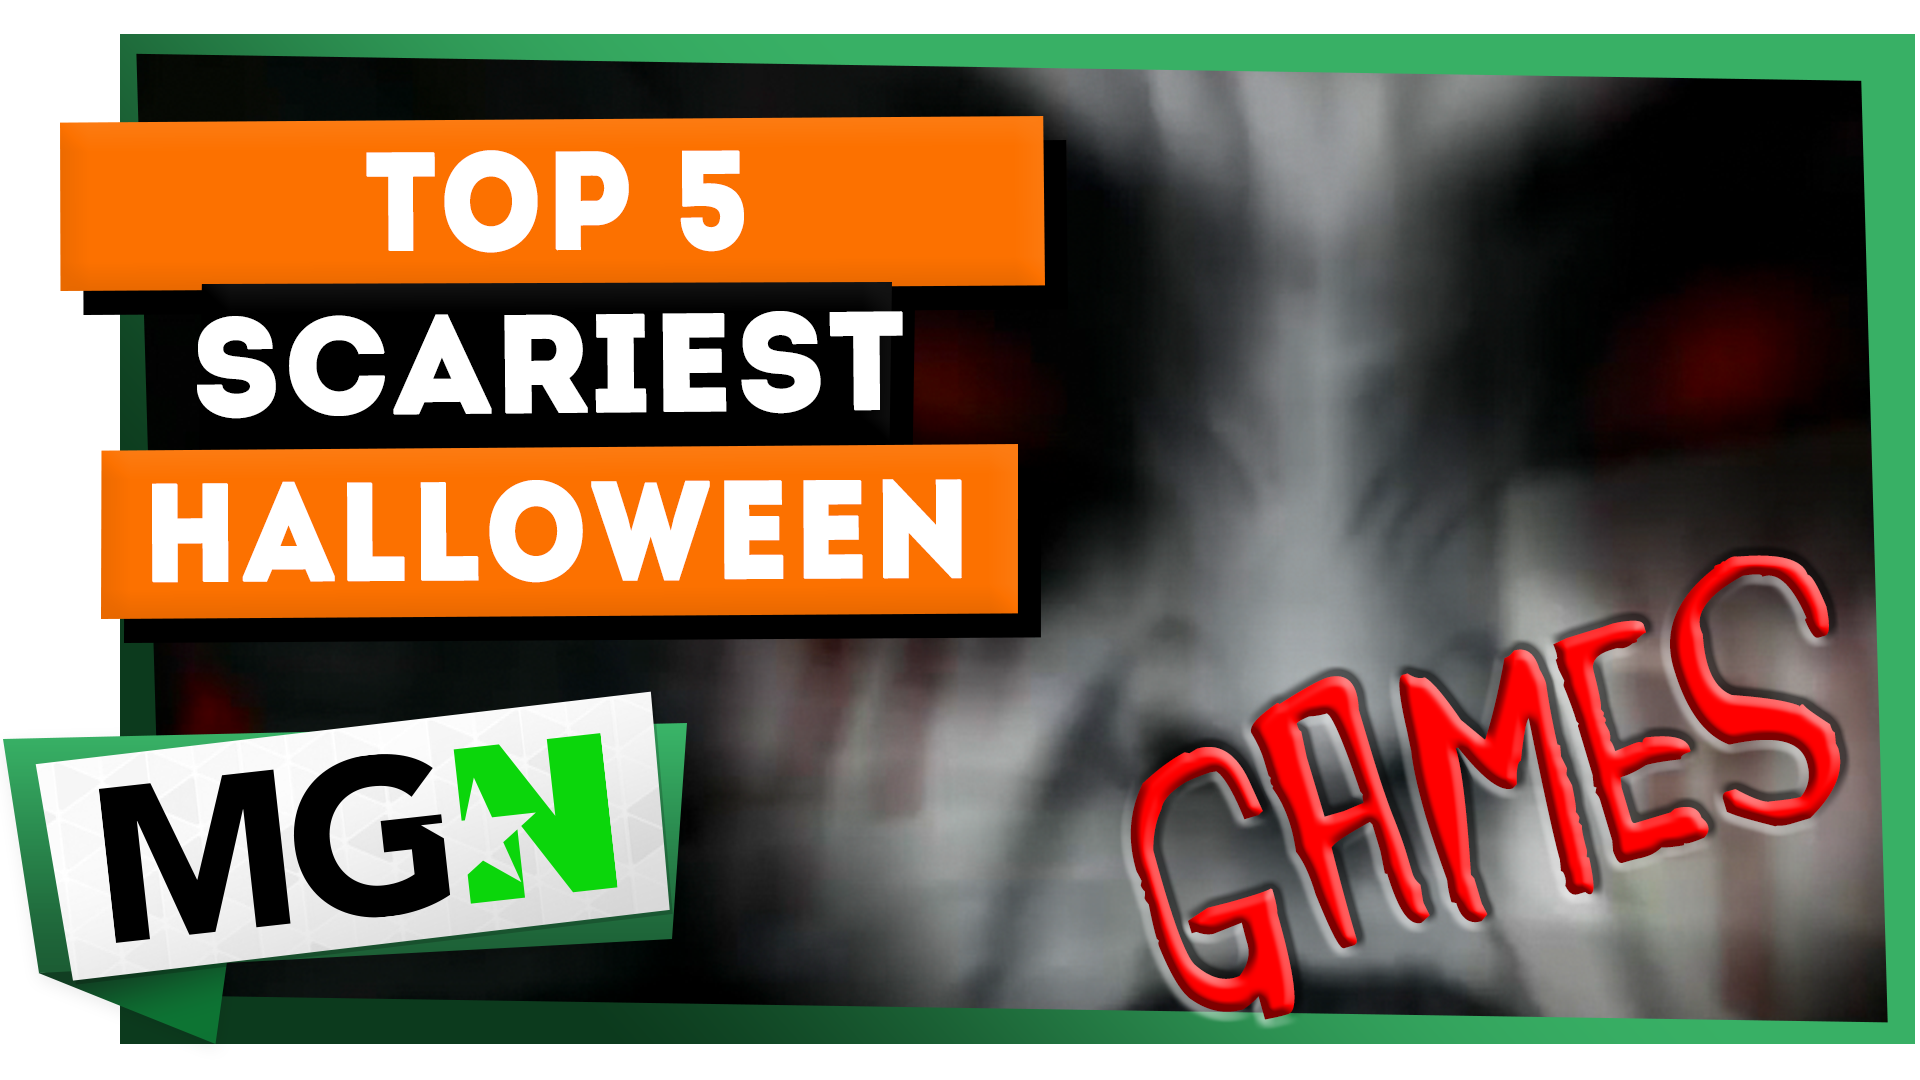 Top 5 scary games